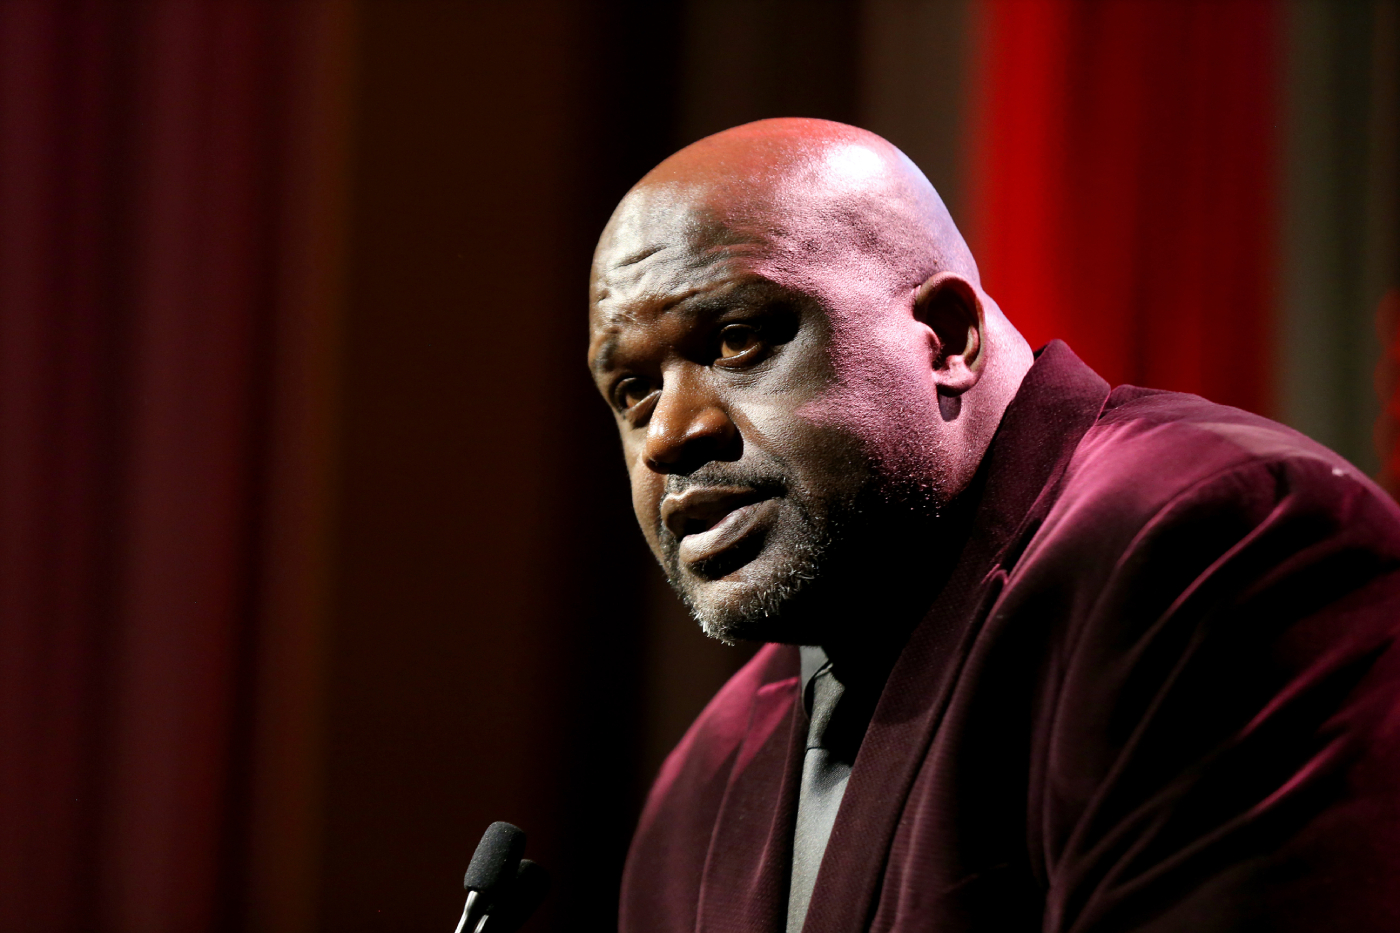 Shaquille O'Neal revealed recently that he voted for the first time ever. Now, he is making his political allegiances clear.